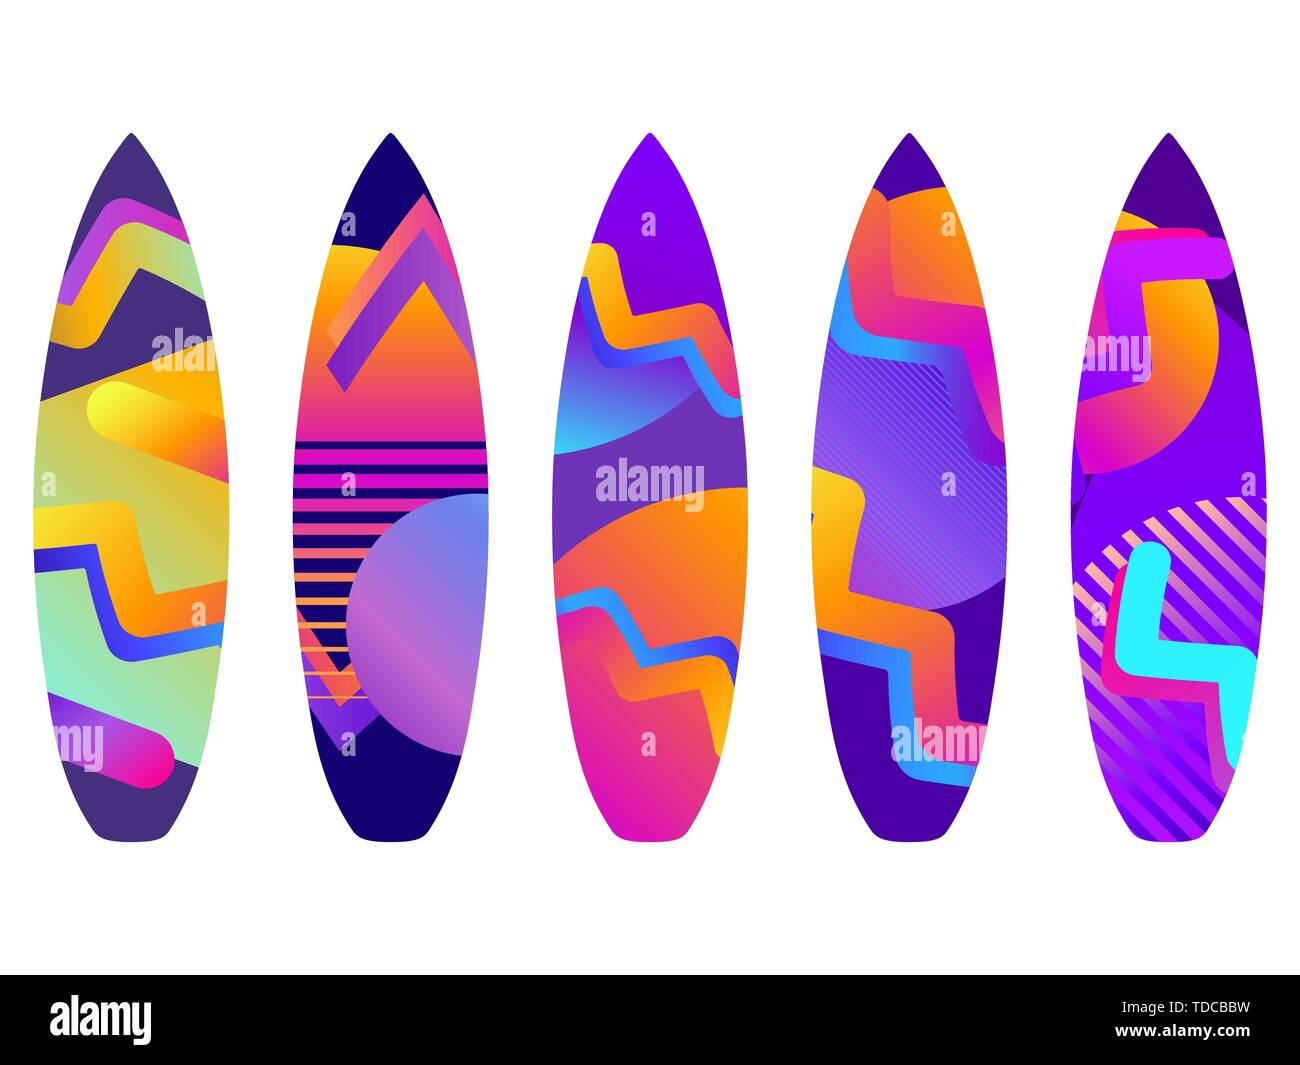 Surfboards on a white background. Types of surfboards with a pattern. Vector illustration - Stock Image